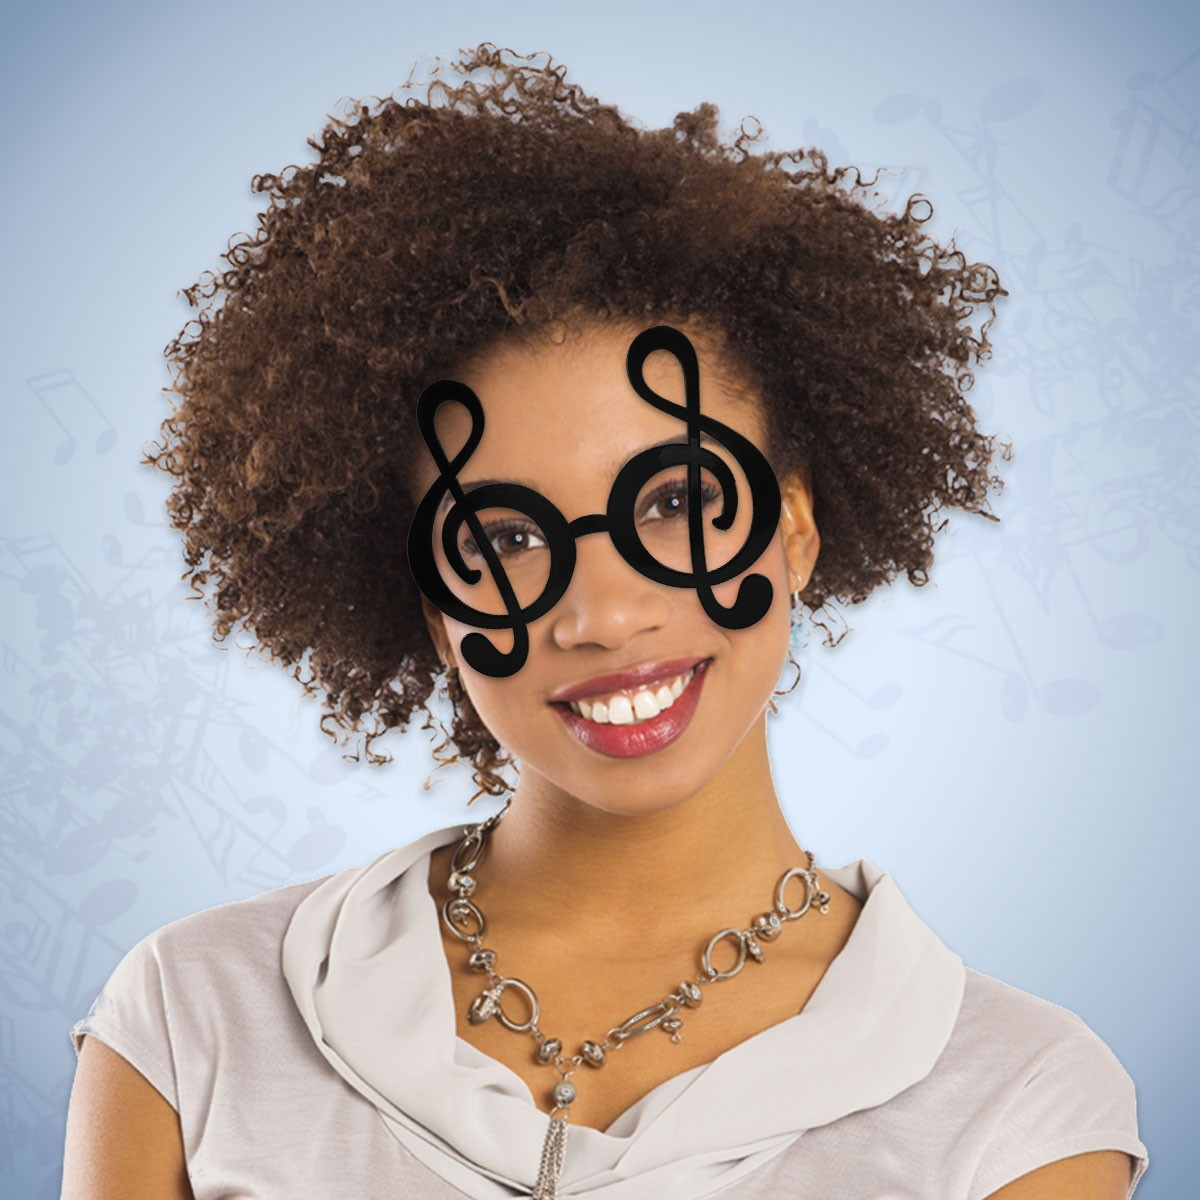 BLACK TREBLE CLEF GLASSES